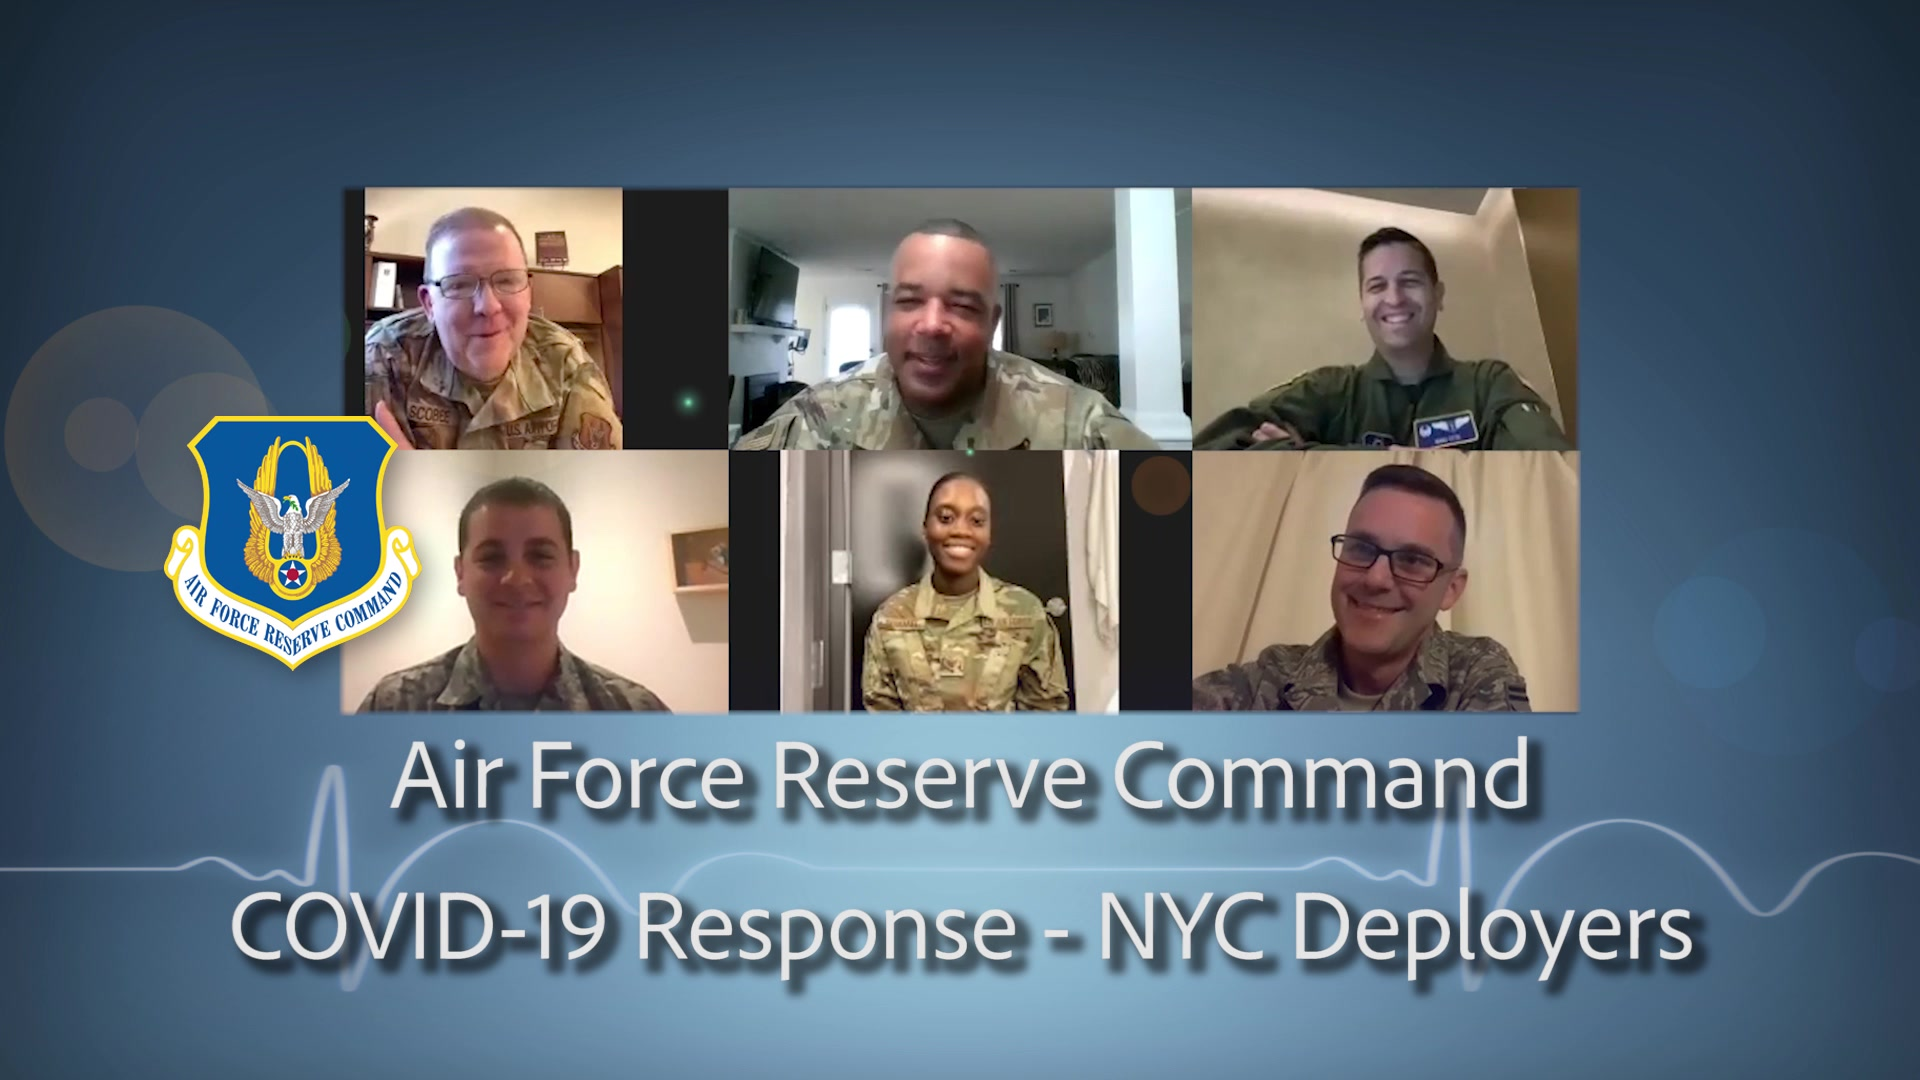 "In keeping with the first Air Force Reserve COVID-19 priority of ""Taking care of Americans, Airmen, and Families"", Lt. Gen. Richard Scobee, Commander of the Air Force Reserve Command along with the AFRC Command Chief, CMSgt Timothy White check in with four airmen that are deployed to New York City taking care of the hardest hit Americans in this pandemic.  The call was made simply to say Thank You and to ask if there is anything else in the way of support needed to help carry out the mission.  THANK YOU TO ALL OUR RESERVE CITIZEN AIRMEN ON THE FRONT LINES FIGHTING COVID-19!"